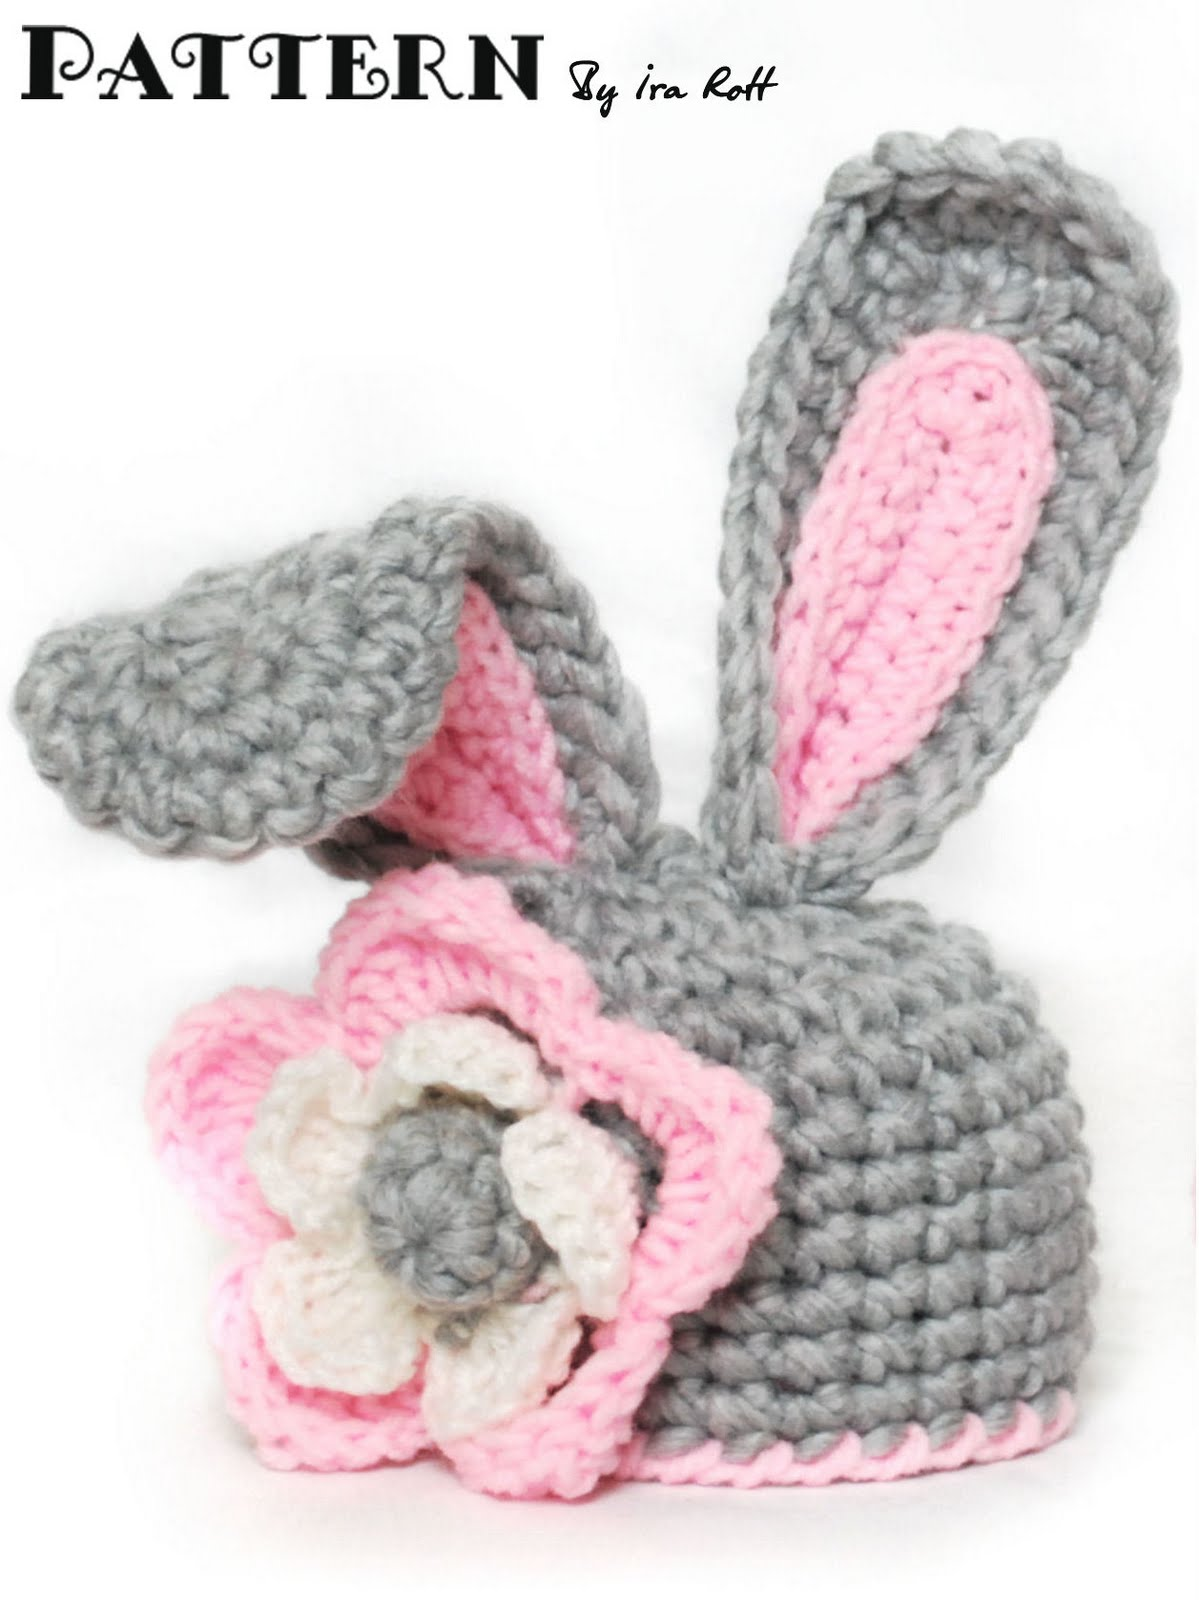 Crochet Bunny Hat With Flower Pattern : Fashion Crochet Design By Ira Rott: Crochet Bunny Hat With ...